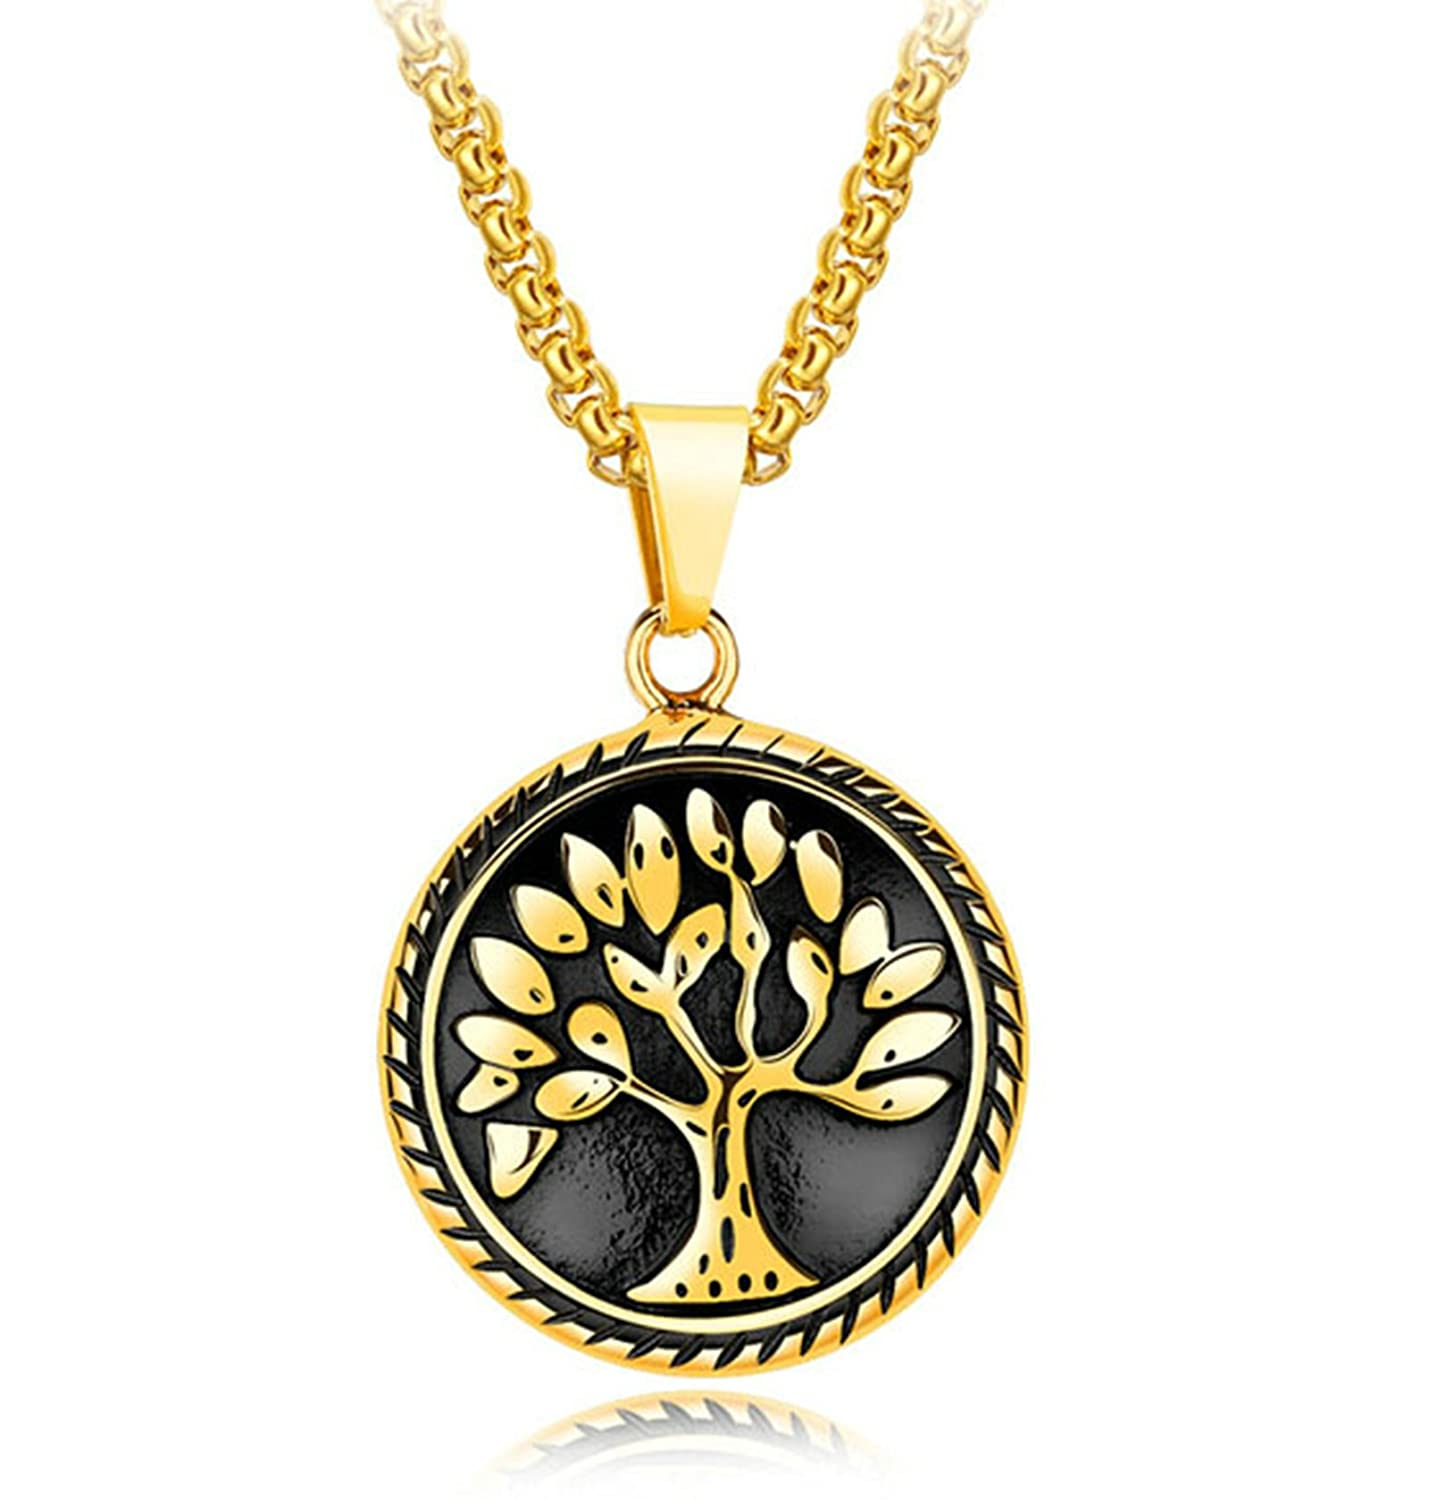 KnSam Necklace Fashion Jewelry Stainless Steel Necklace for Men The Tree of Life